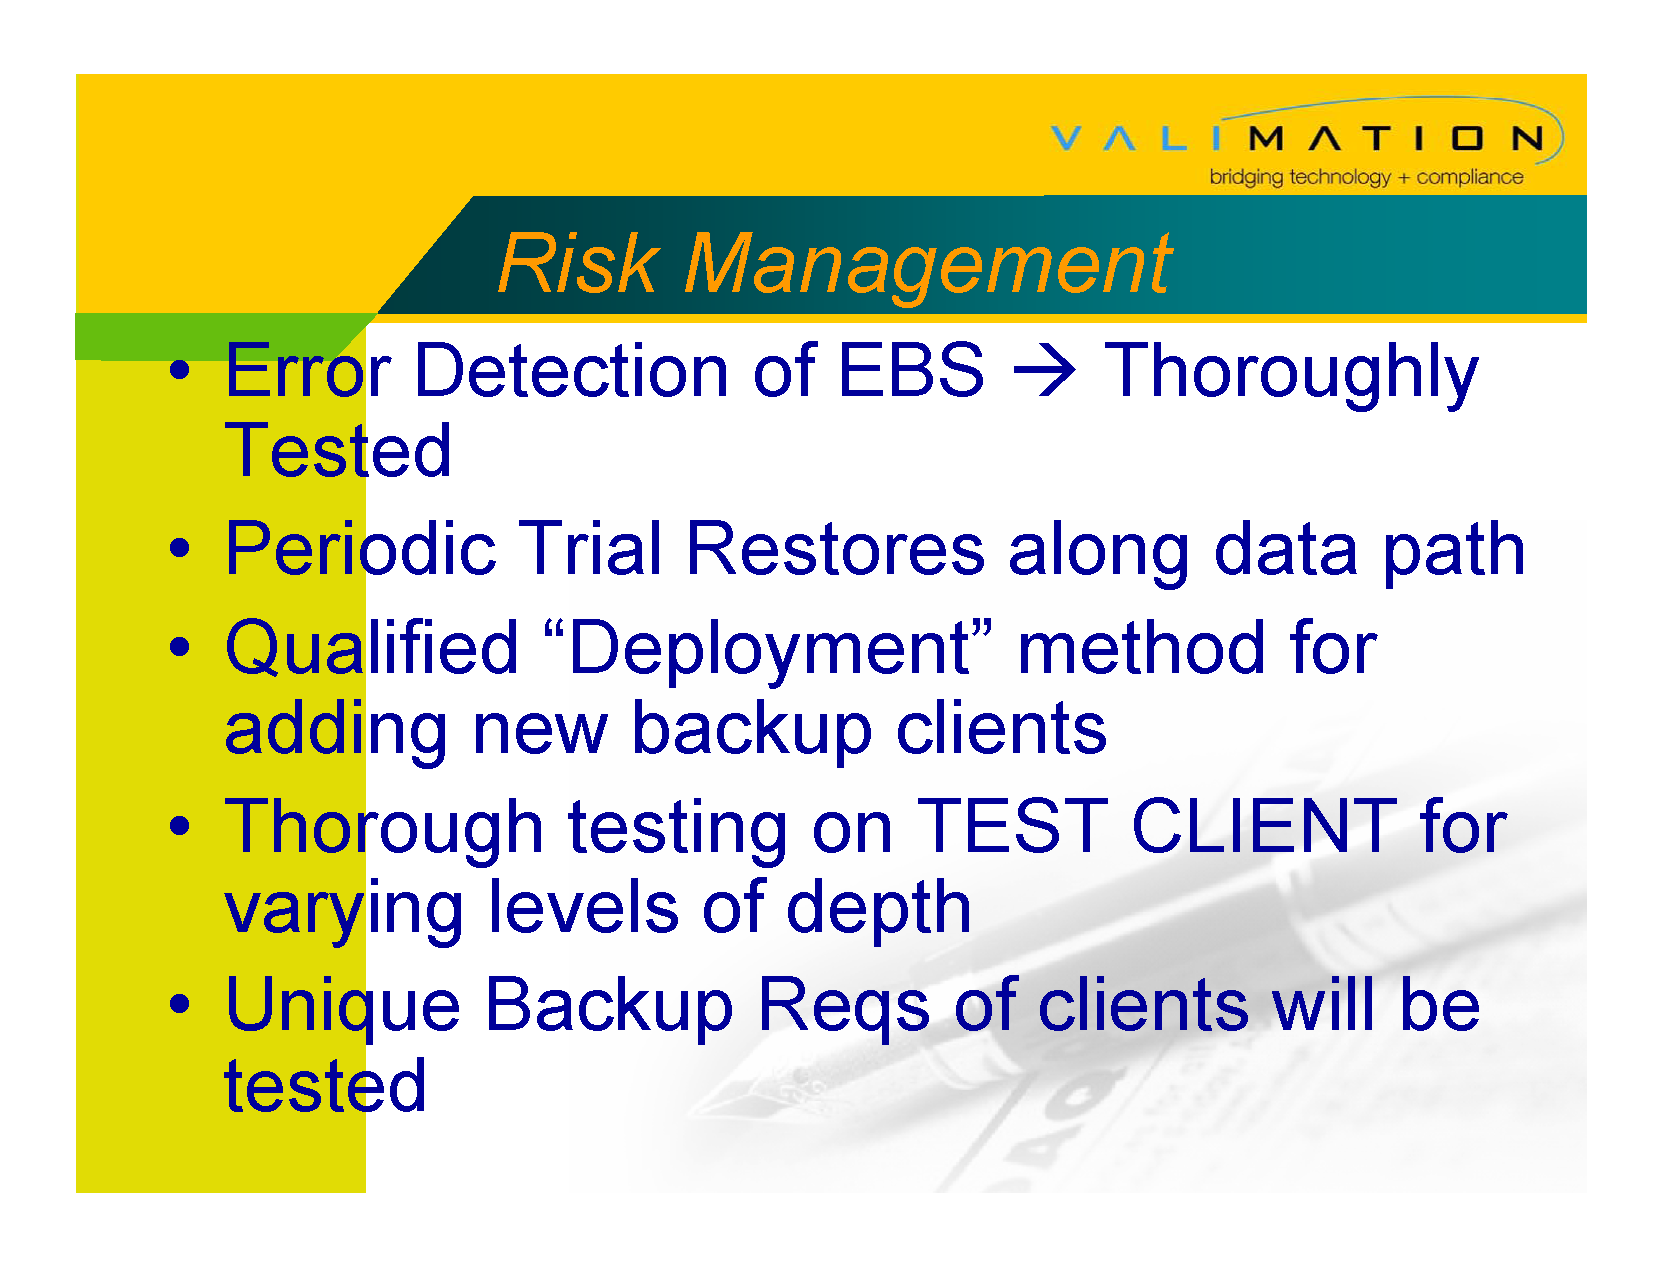 Validating an Enterprise Backup System by ValiMation_Page_17.png